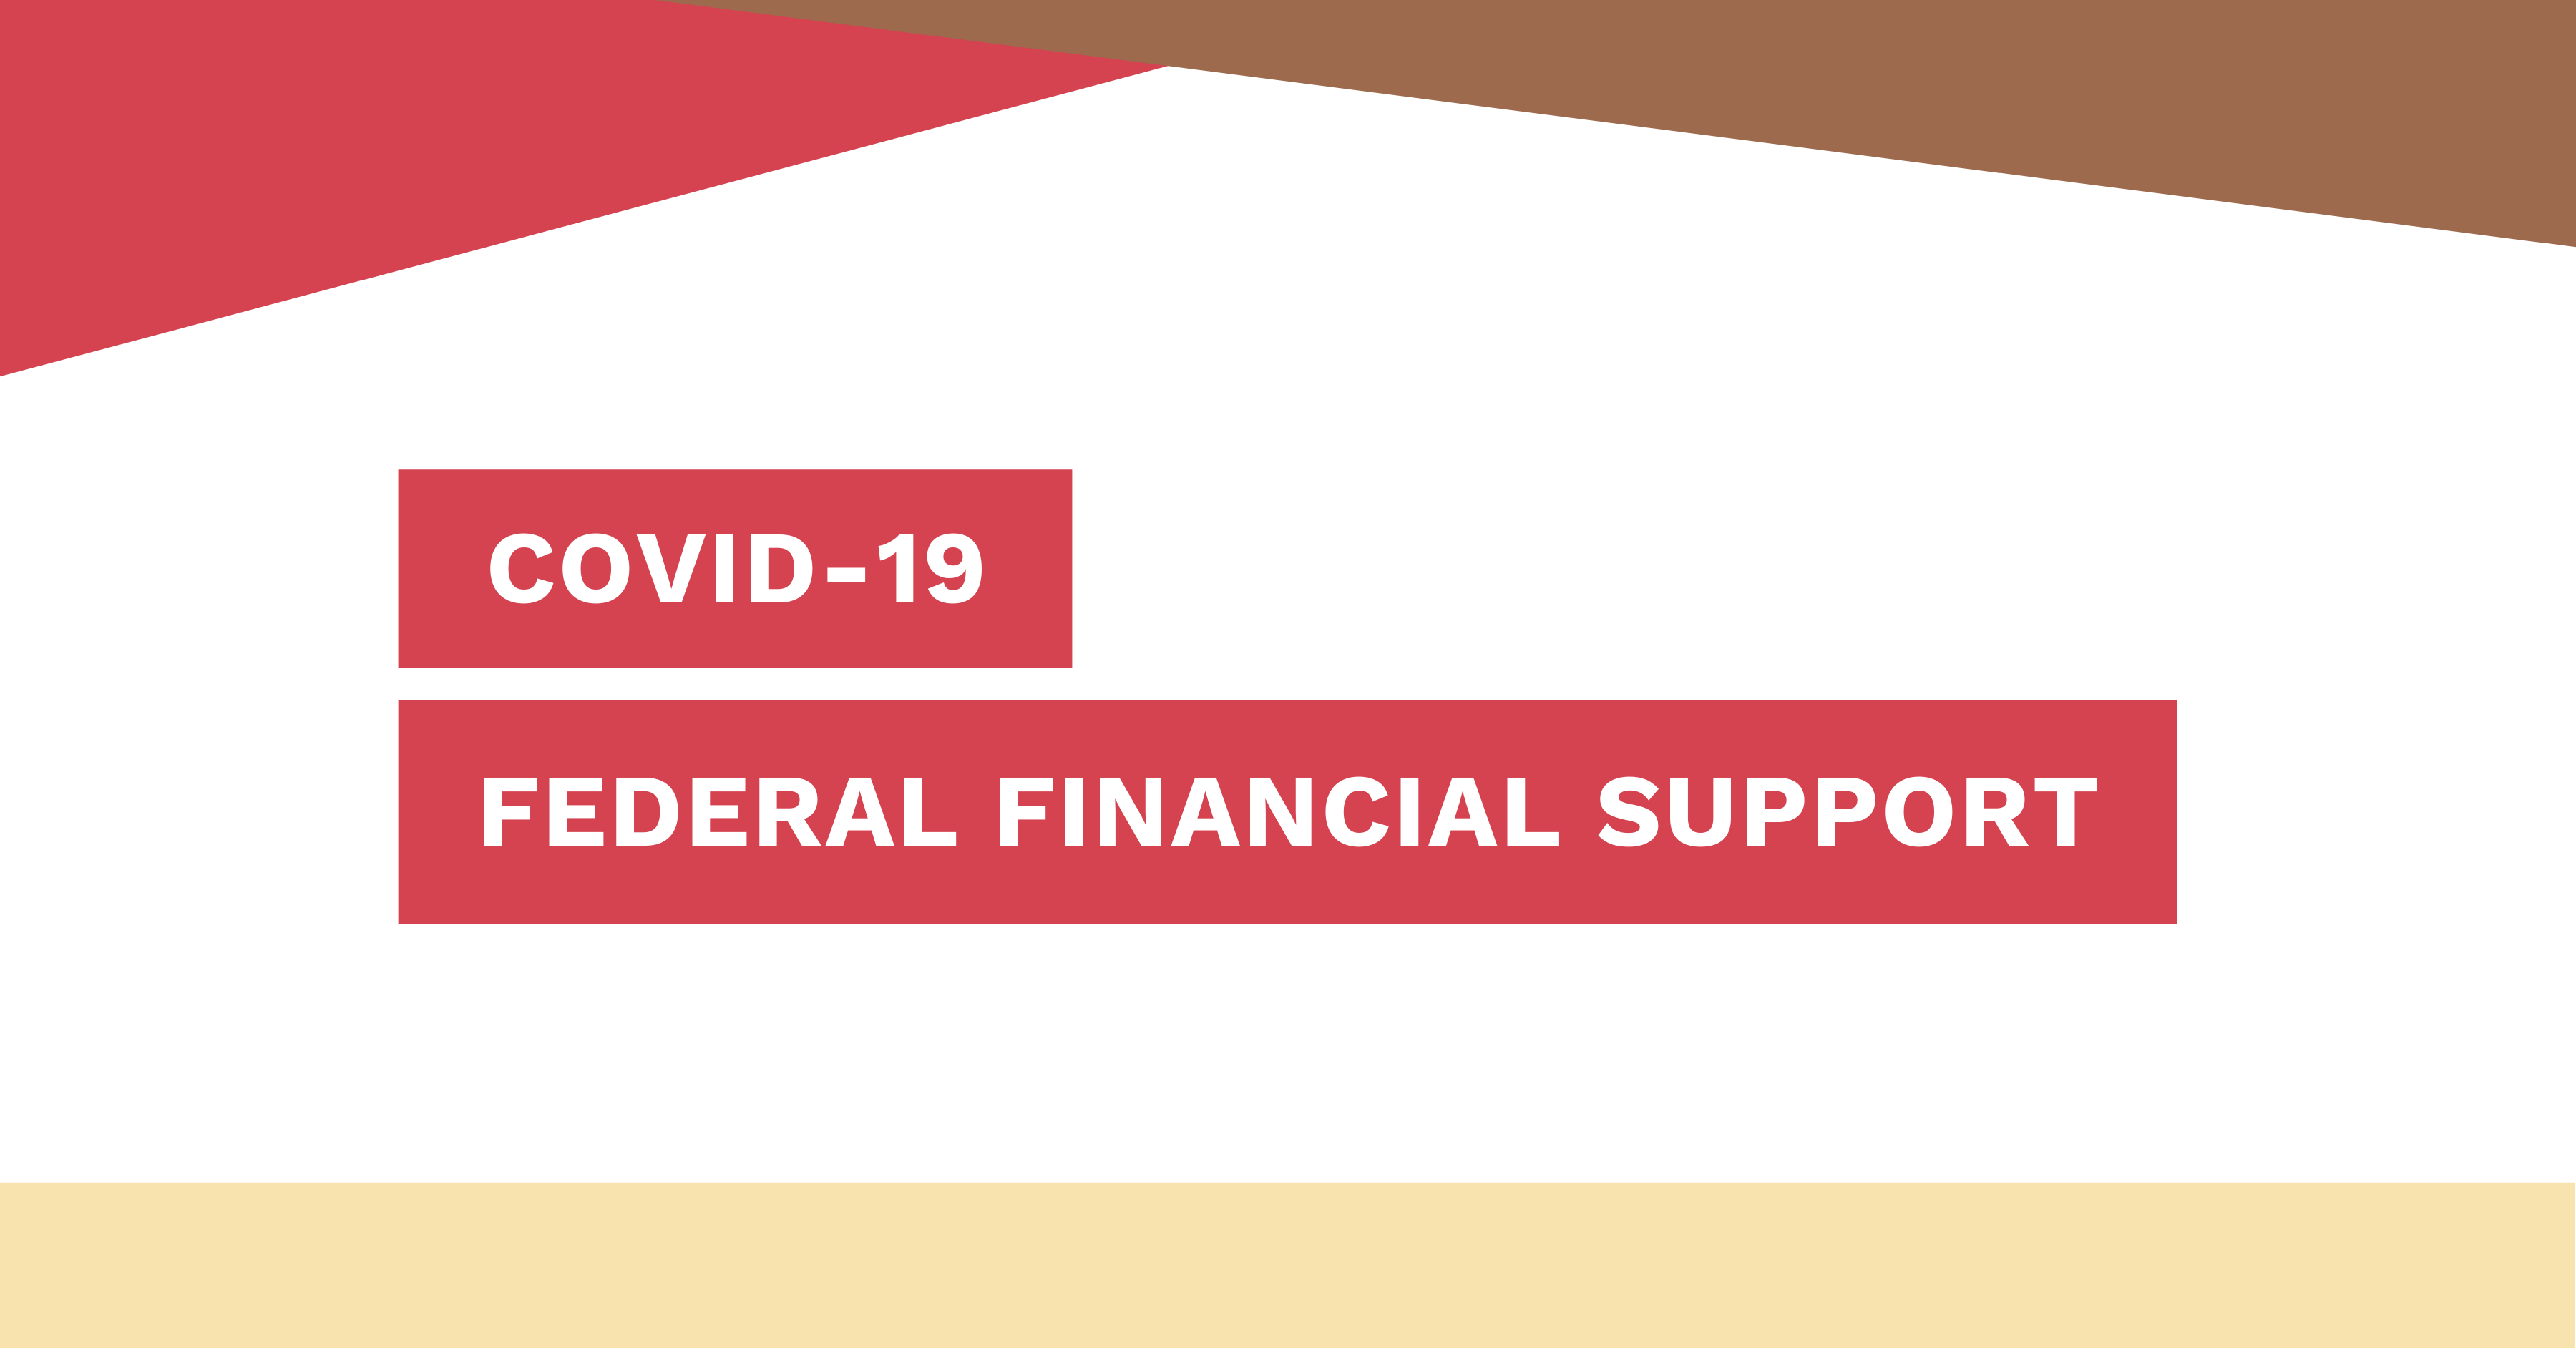 Federal Financial Support – Website Cover Photo